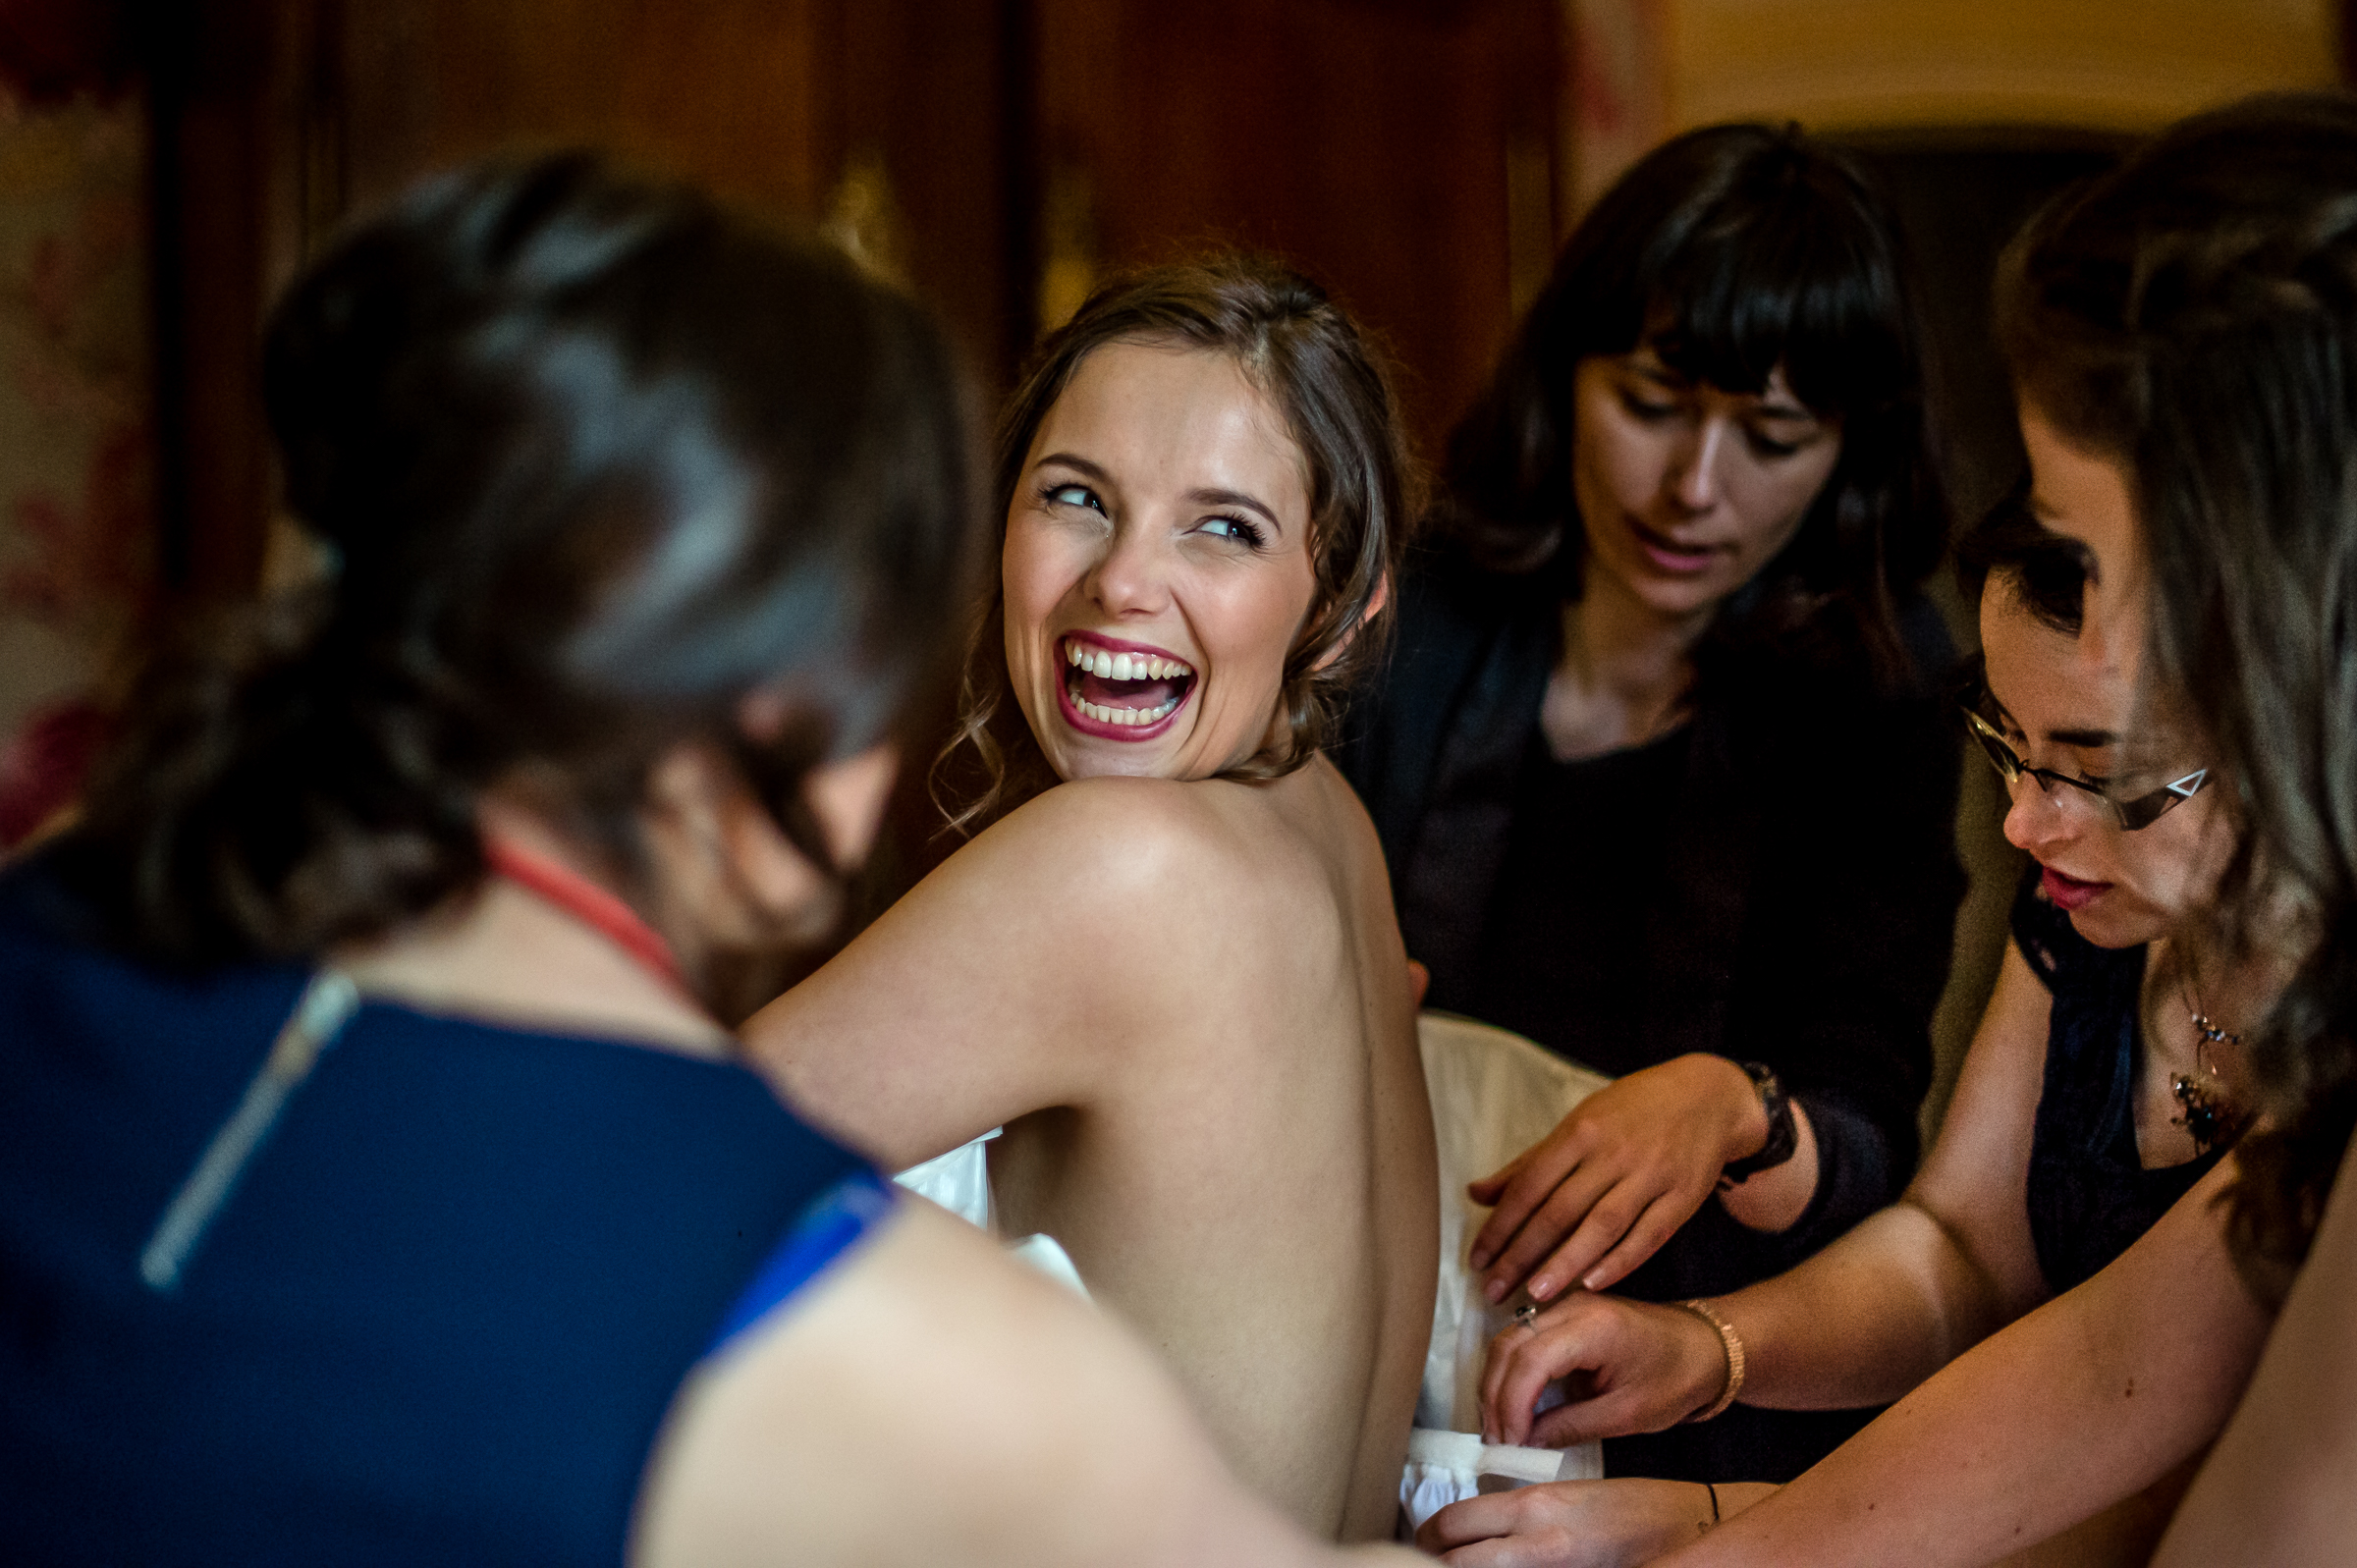 Helping bride into her gown - photo by Gaelle Le Berre Photography